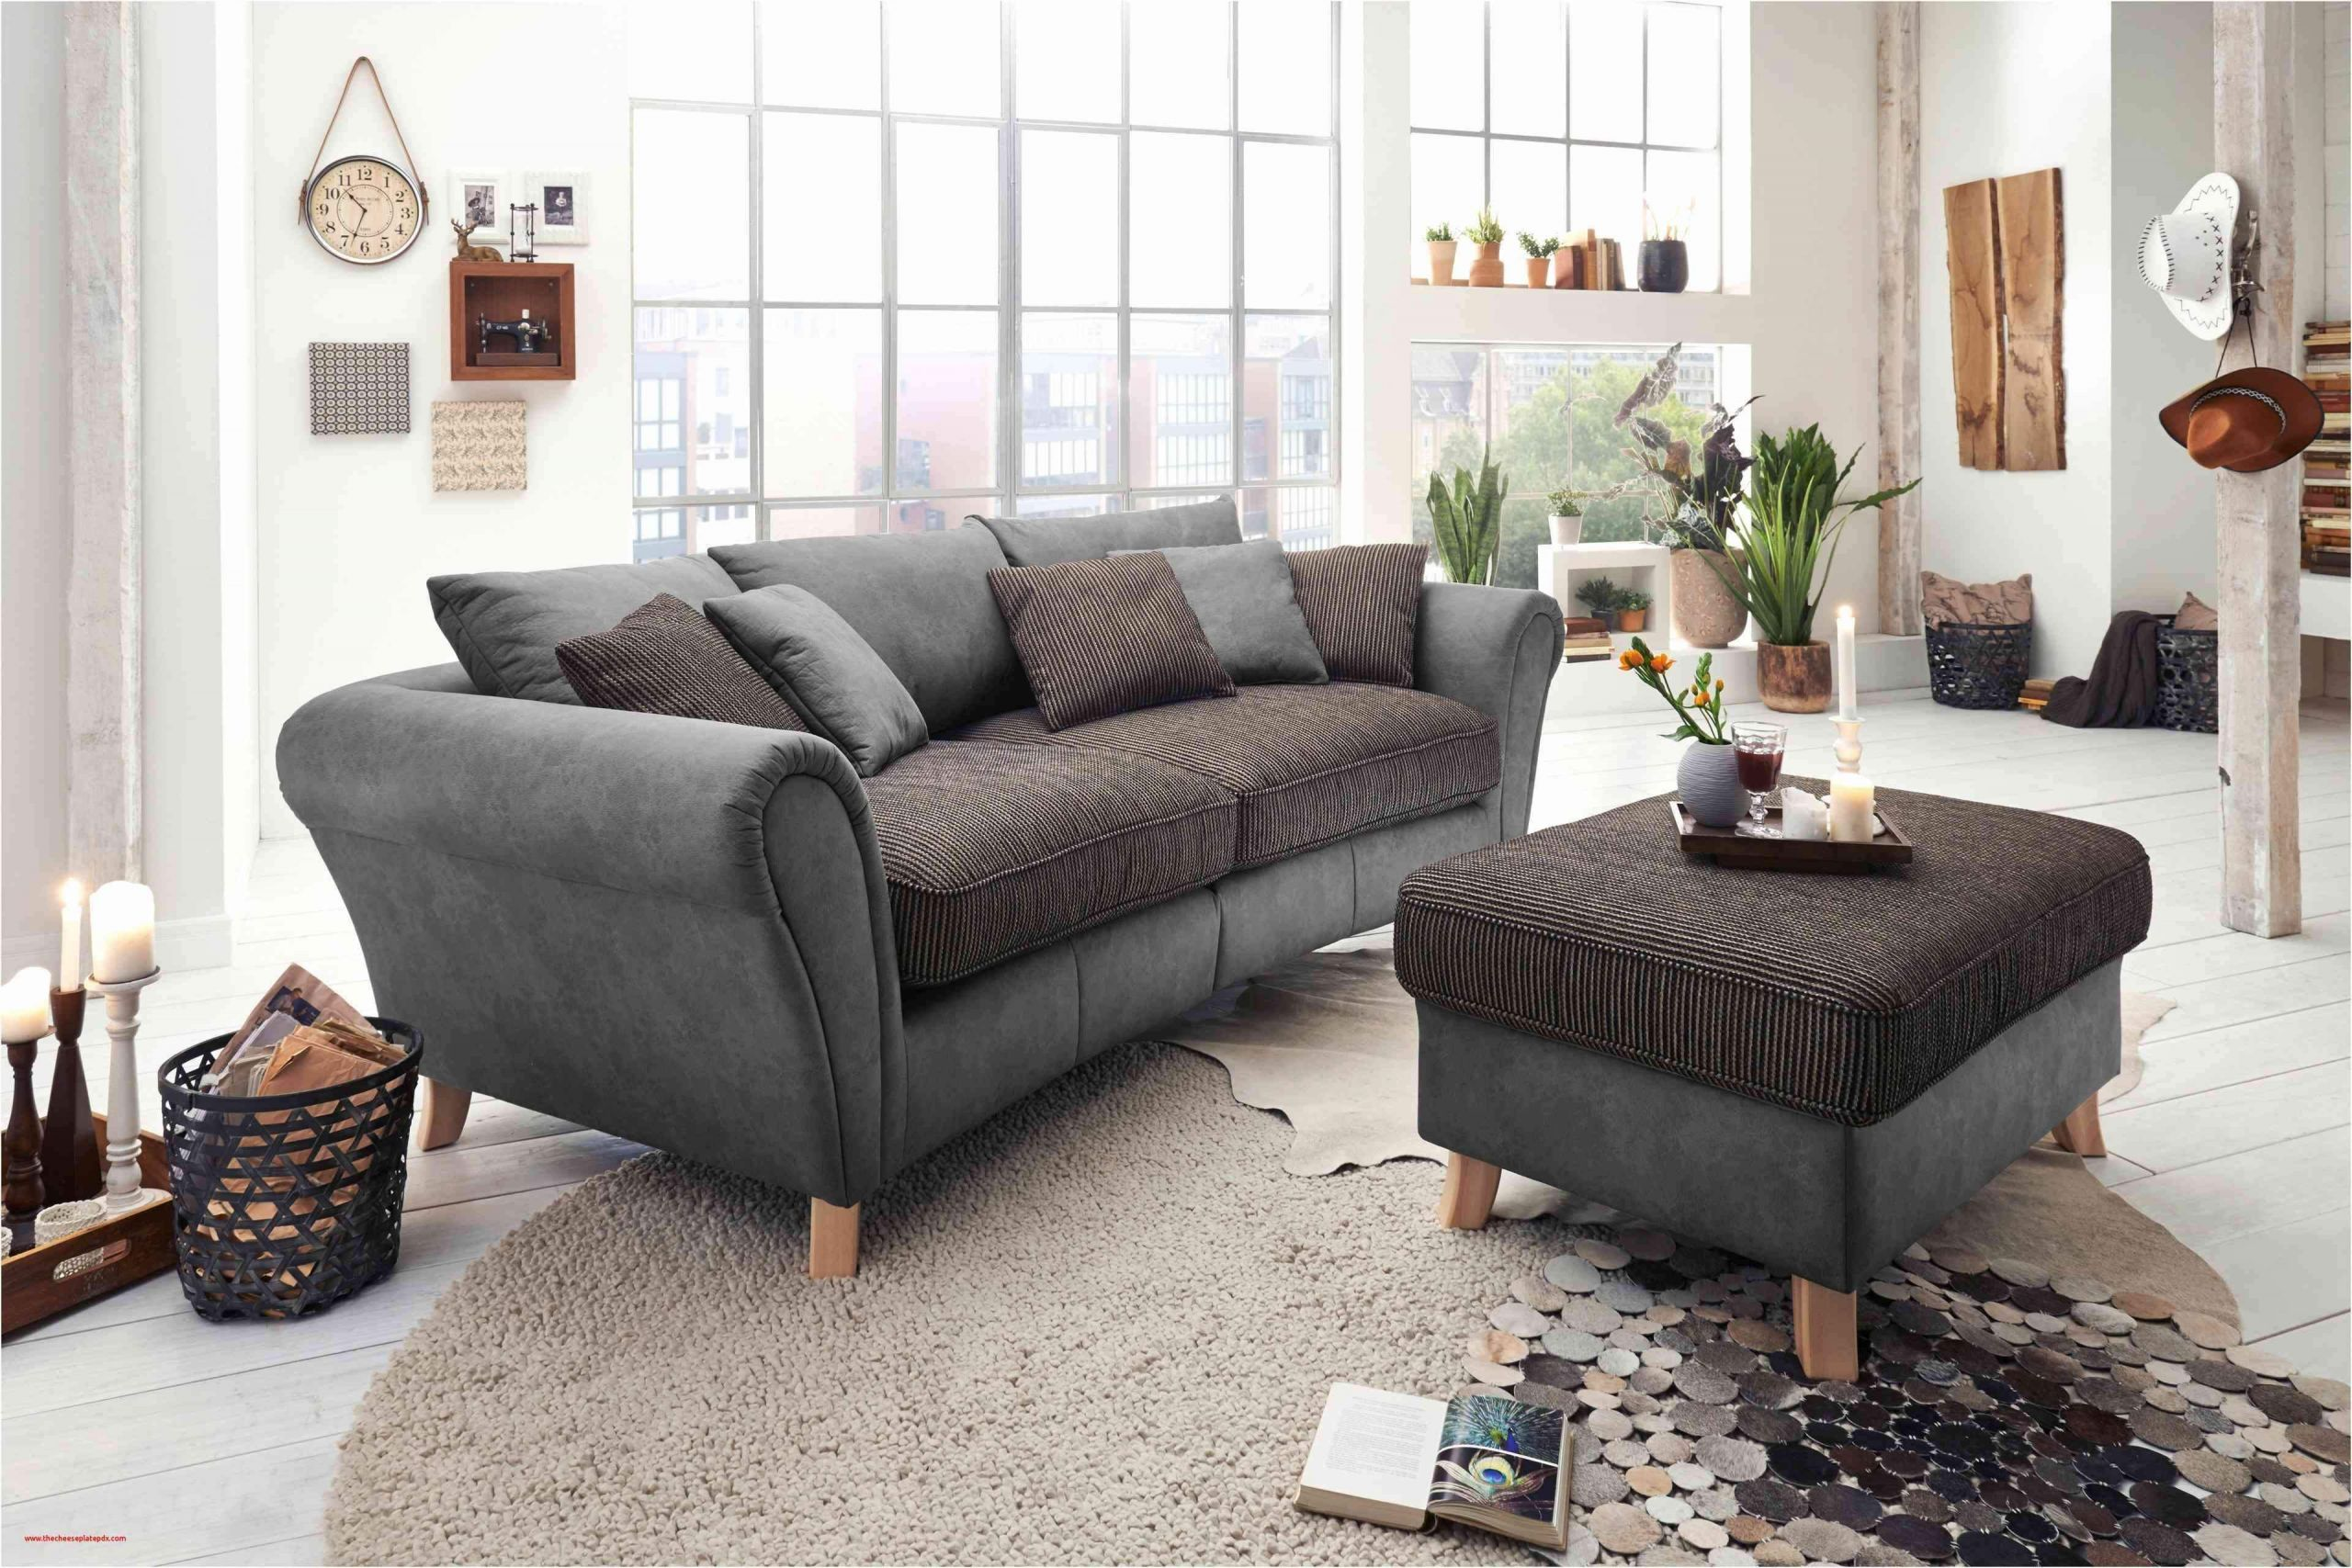 42 luxus gartensofa gunstig stock planen 073u of lounge mobel wohnzimmer